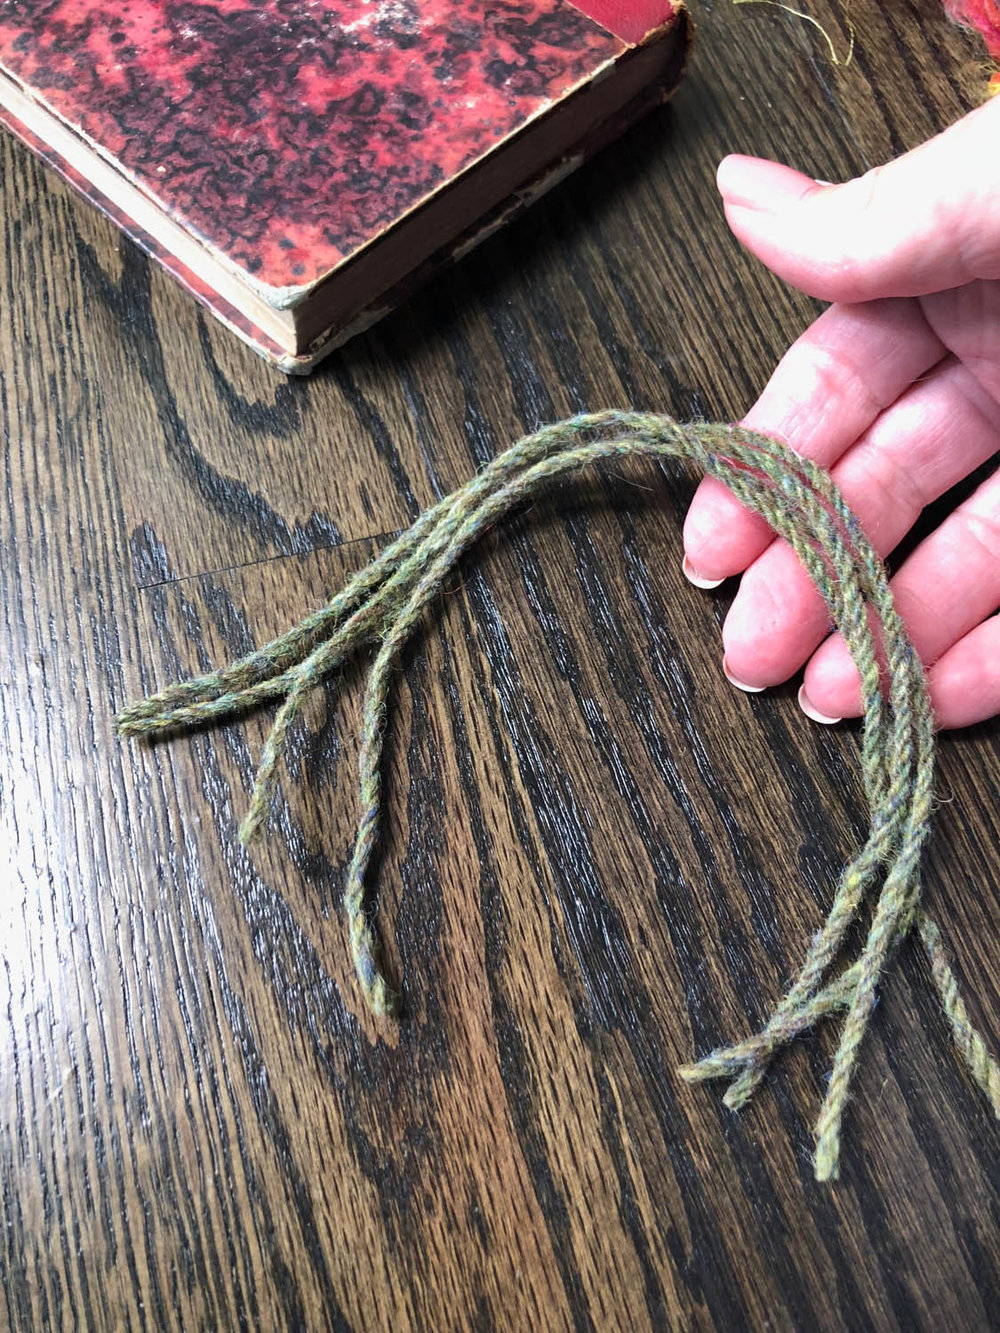 short yarn strands to be used for tassels